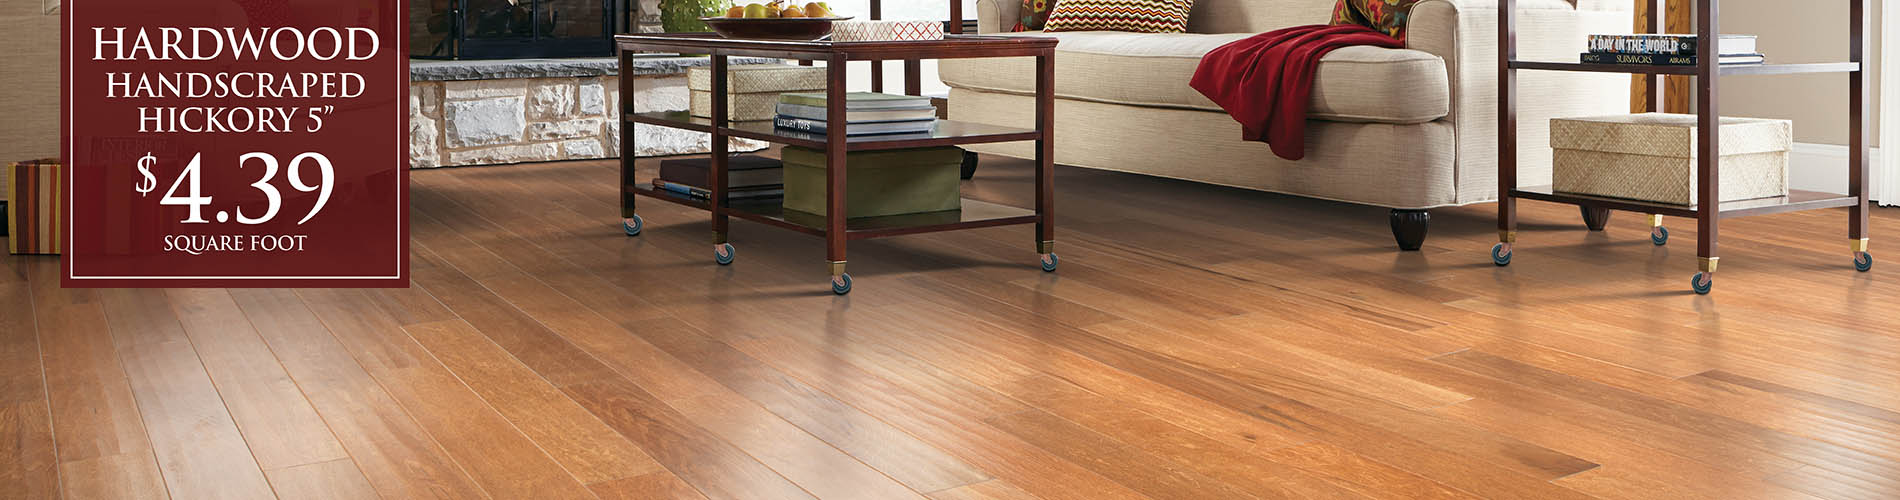 "Handscraped 5"" hickory hardwood flooring on sale $4.39 sq.ft. this month at Brothers Flooring!"